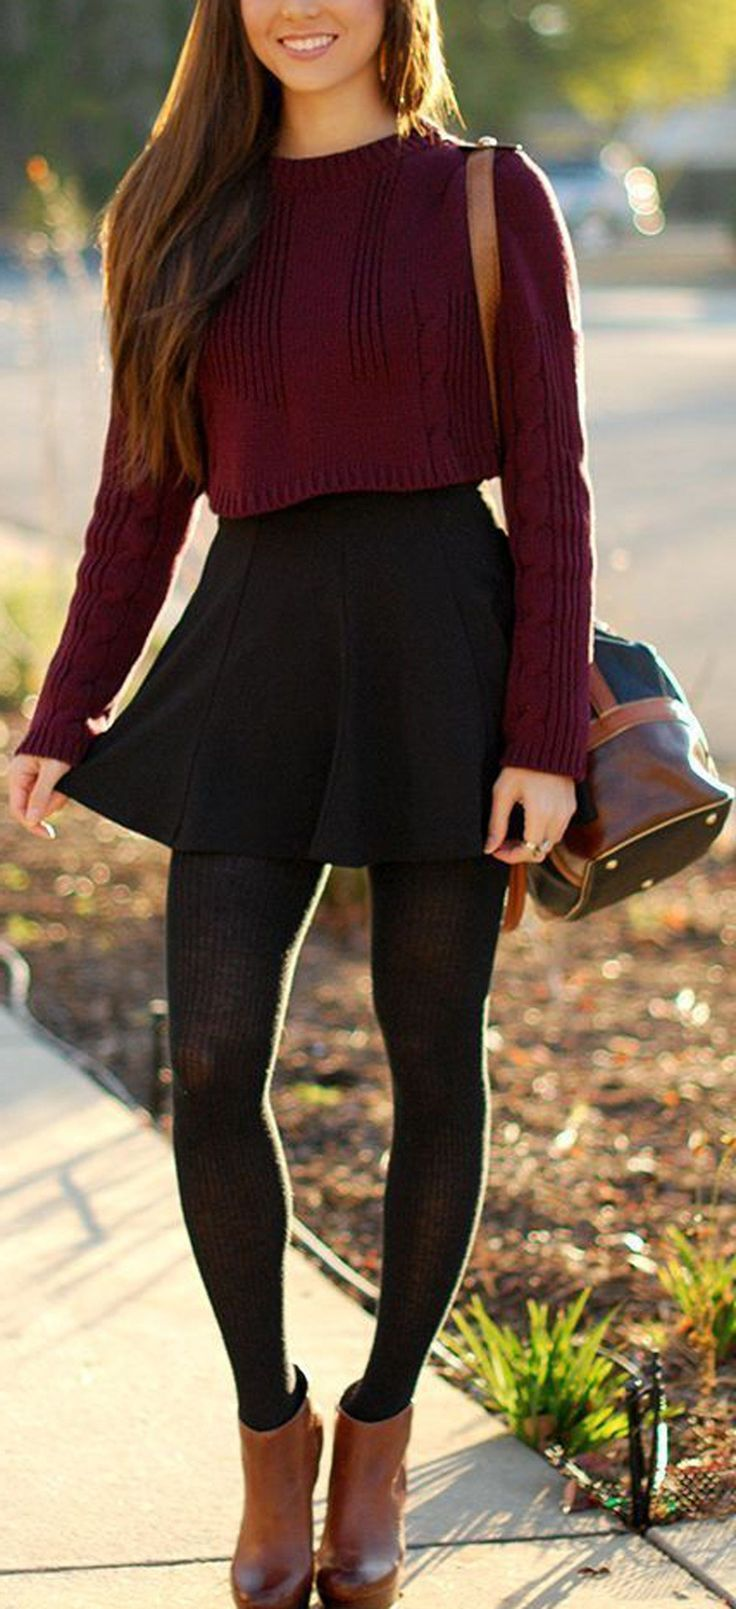 Photo of Classy Winter Outfit Ideas For Teens For Teenage Girls Crop Top Skater Skirt St …